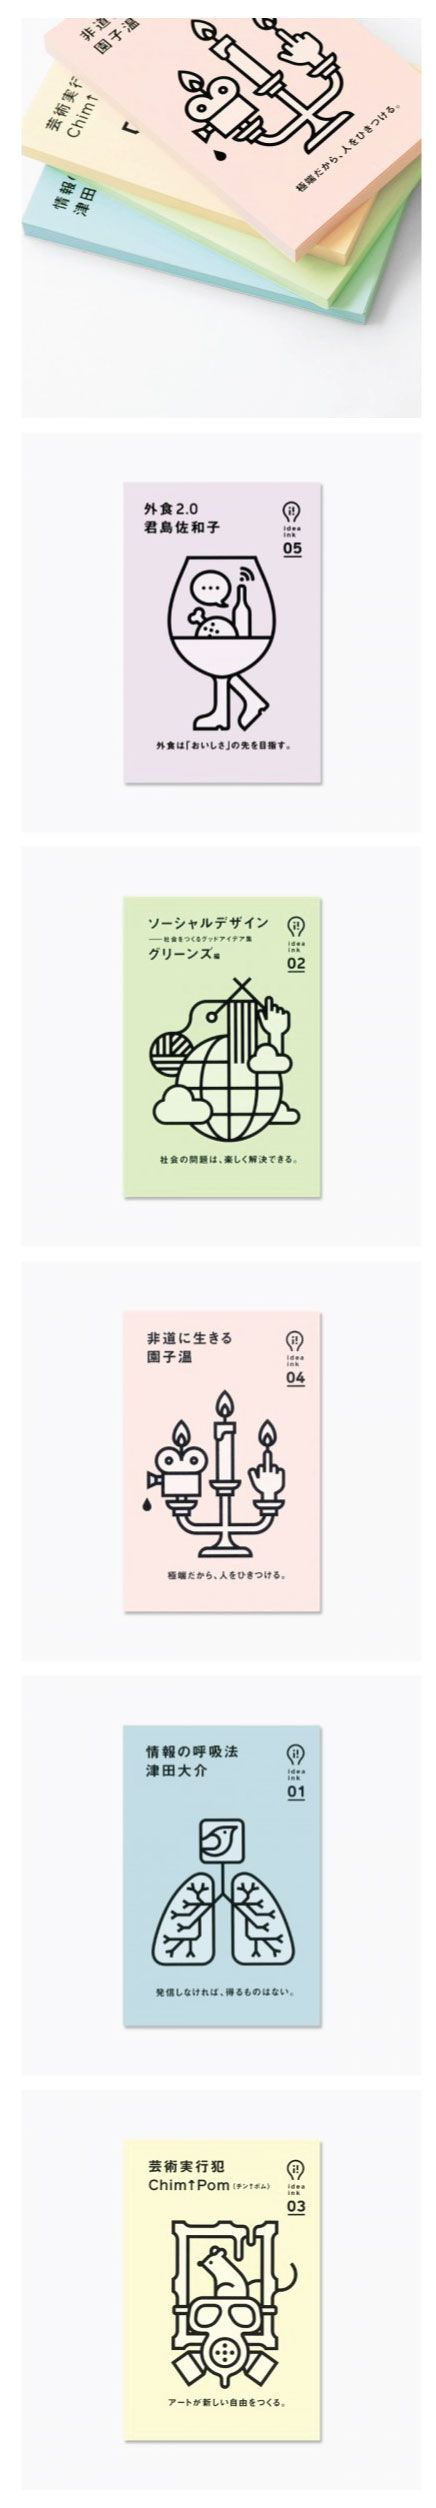 """idea ink is a series of Japanese books focusing on the theme of """"ideas of the future"""", published by Asahi Press and designed by Tokyo-based design studio Groovisions."""